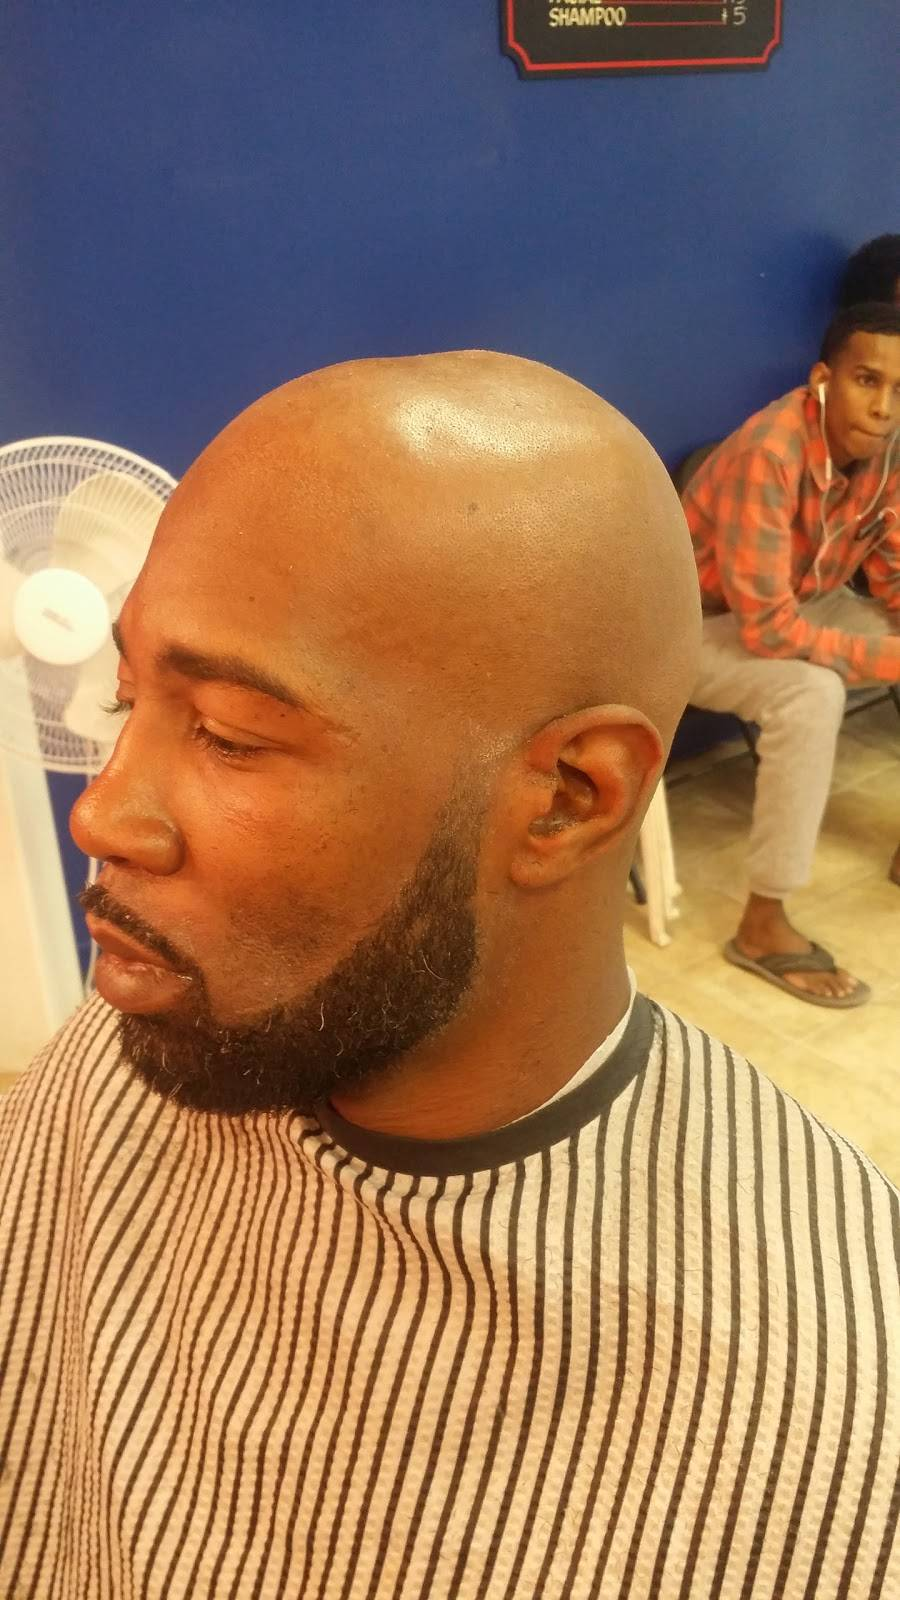 Blendz Barbershop MN - hair care  | Photo 1 of 3 | Address: 741 University Ave W #2, St Paul, MN 55104, USA | Phone: (651) 330-2469